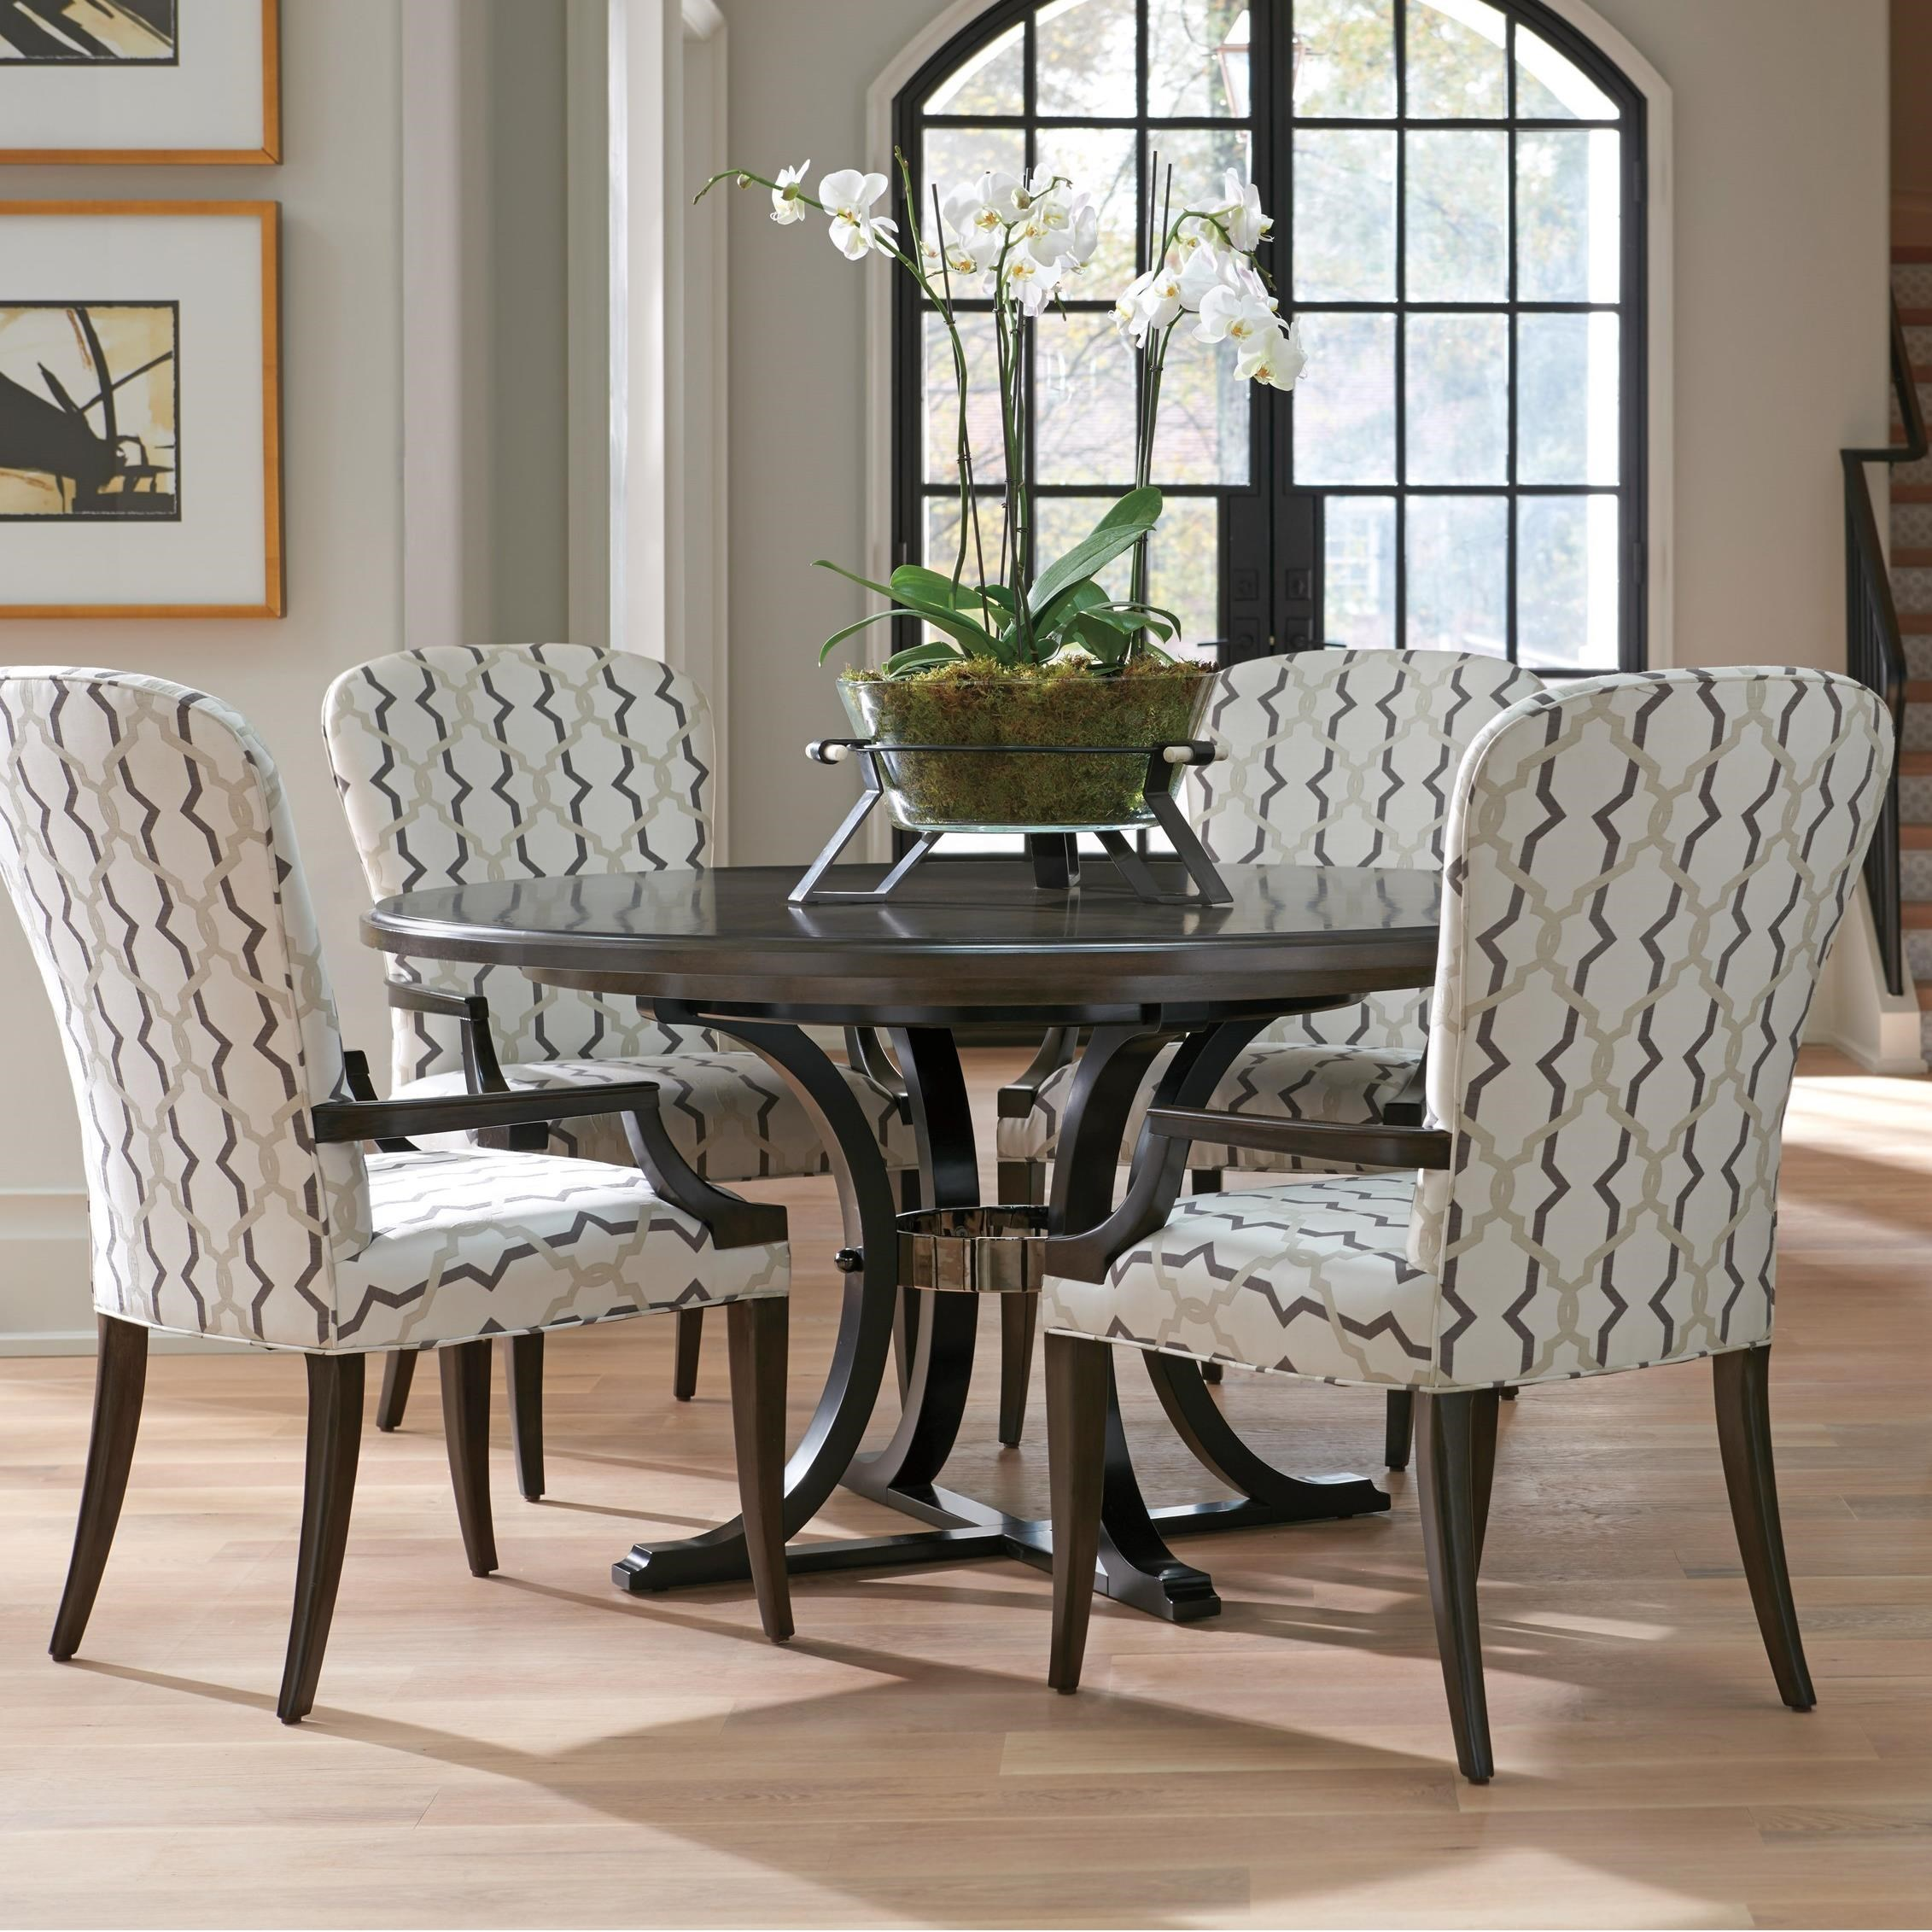 Brentwood 5 Pc Dining Set by Barclay Butera at Baer's Furniture